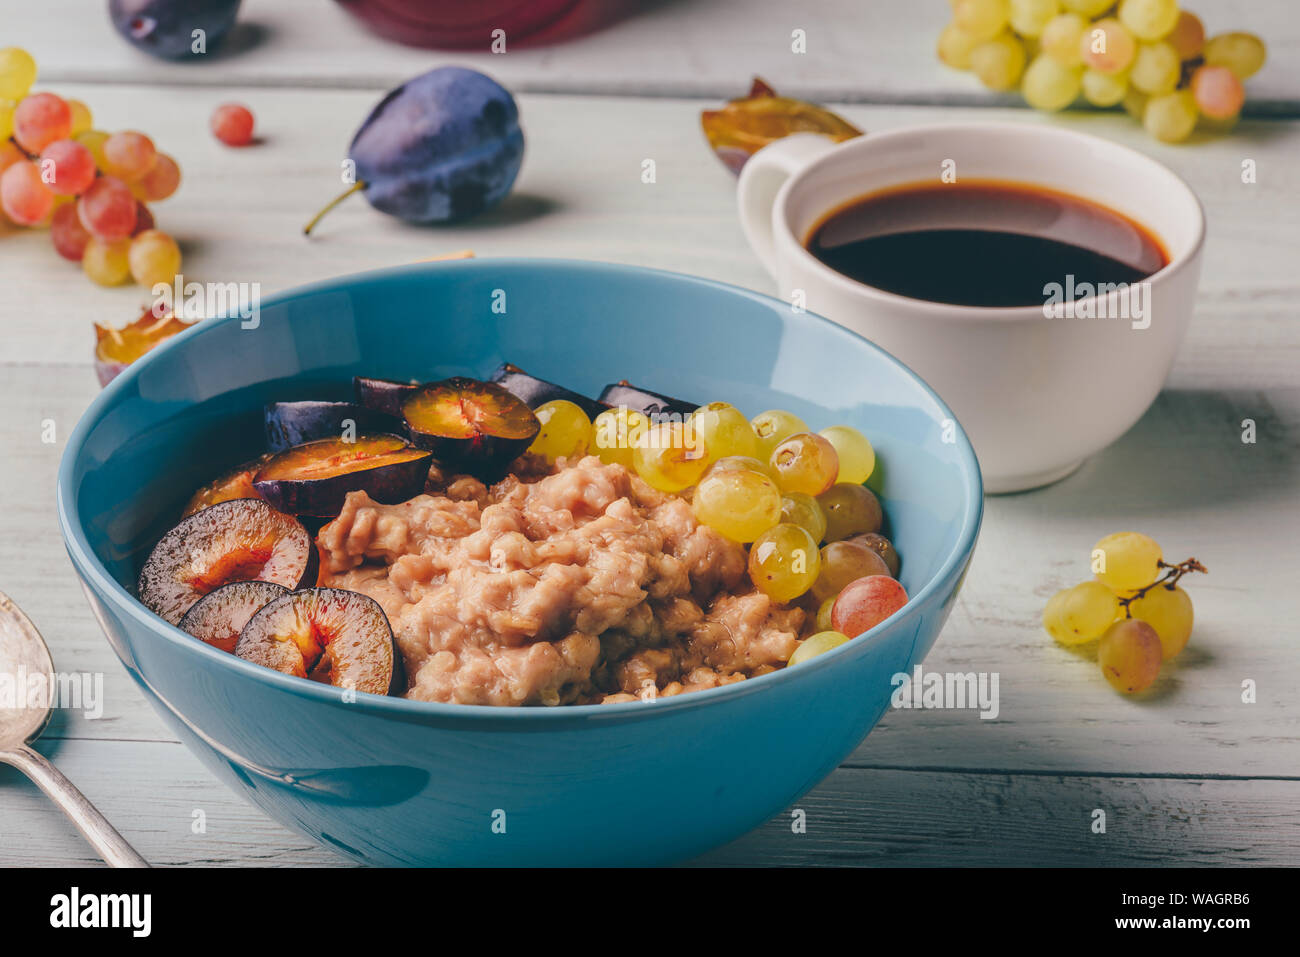 Healthy breakfast concept. Porridge with fresh plum, green grapes and cup of coffee. Ingredients over wooden background. Stock Photo